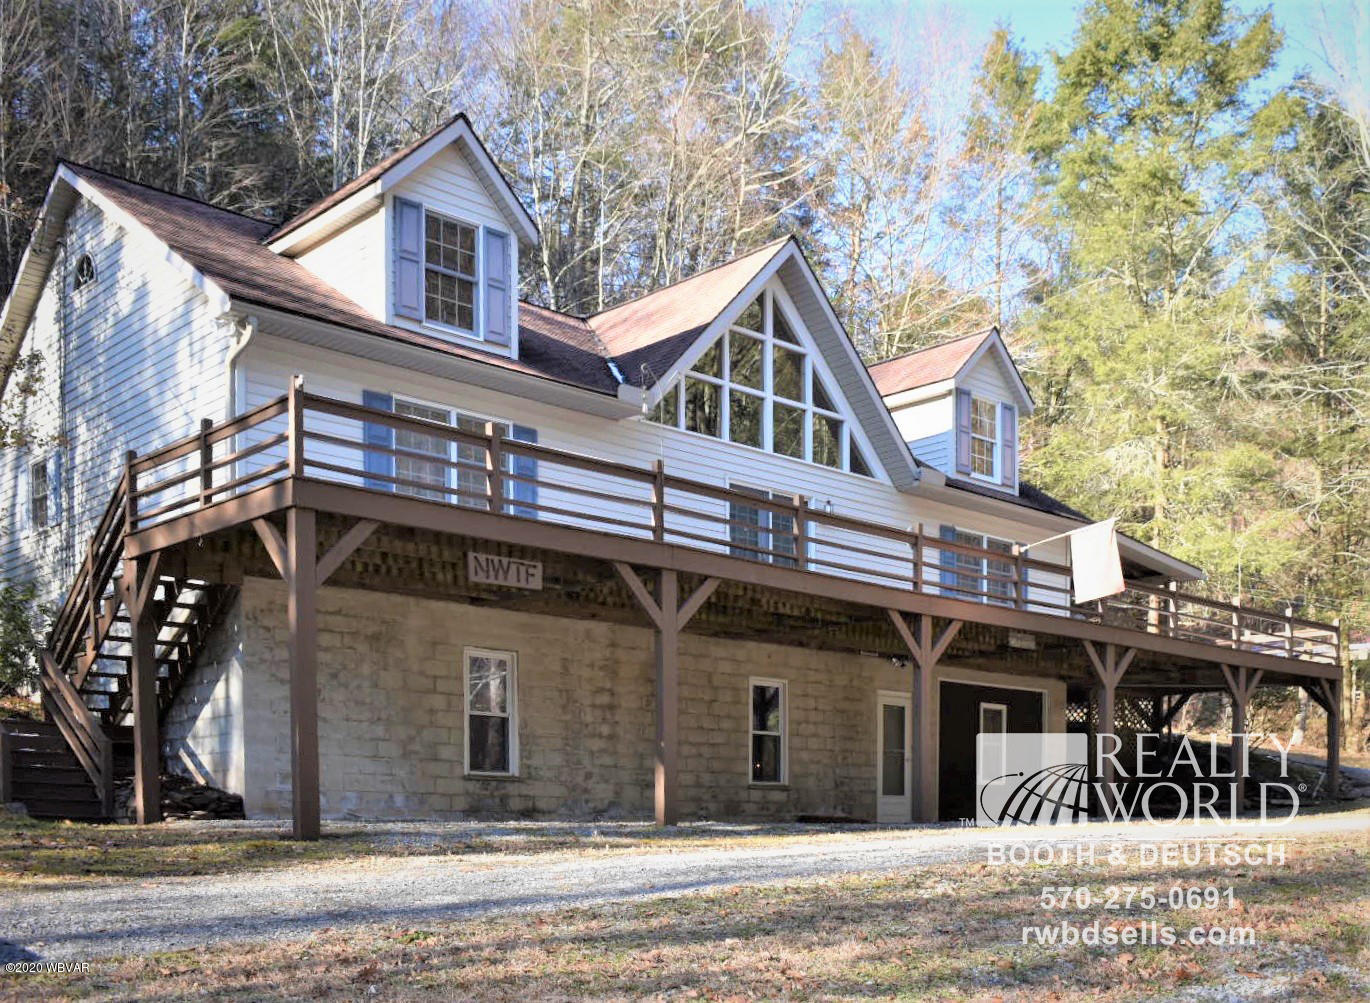 10505 US ROUTE 220 HIGHWAY,Hughesville,PA 17737,6 Bedrooms Bedrooms,1 BathroomBathrooms,Cabin/vacation home,US ROUTE 220,WB-90118